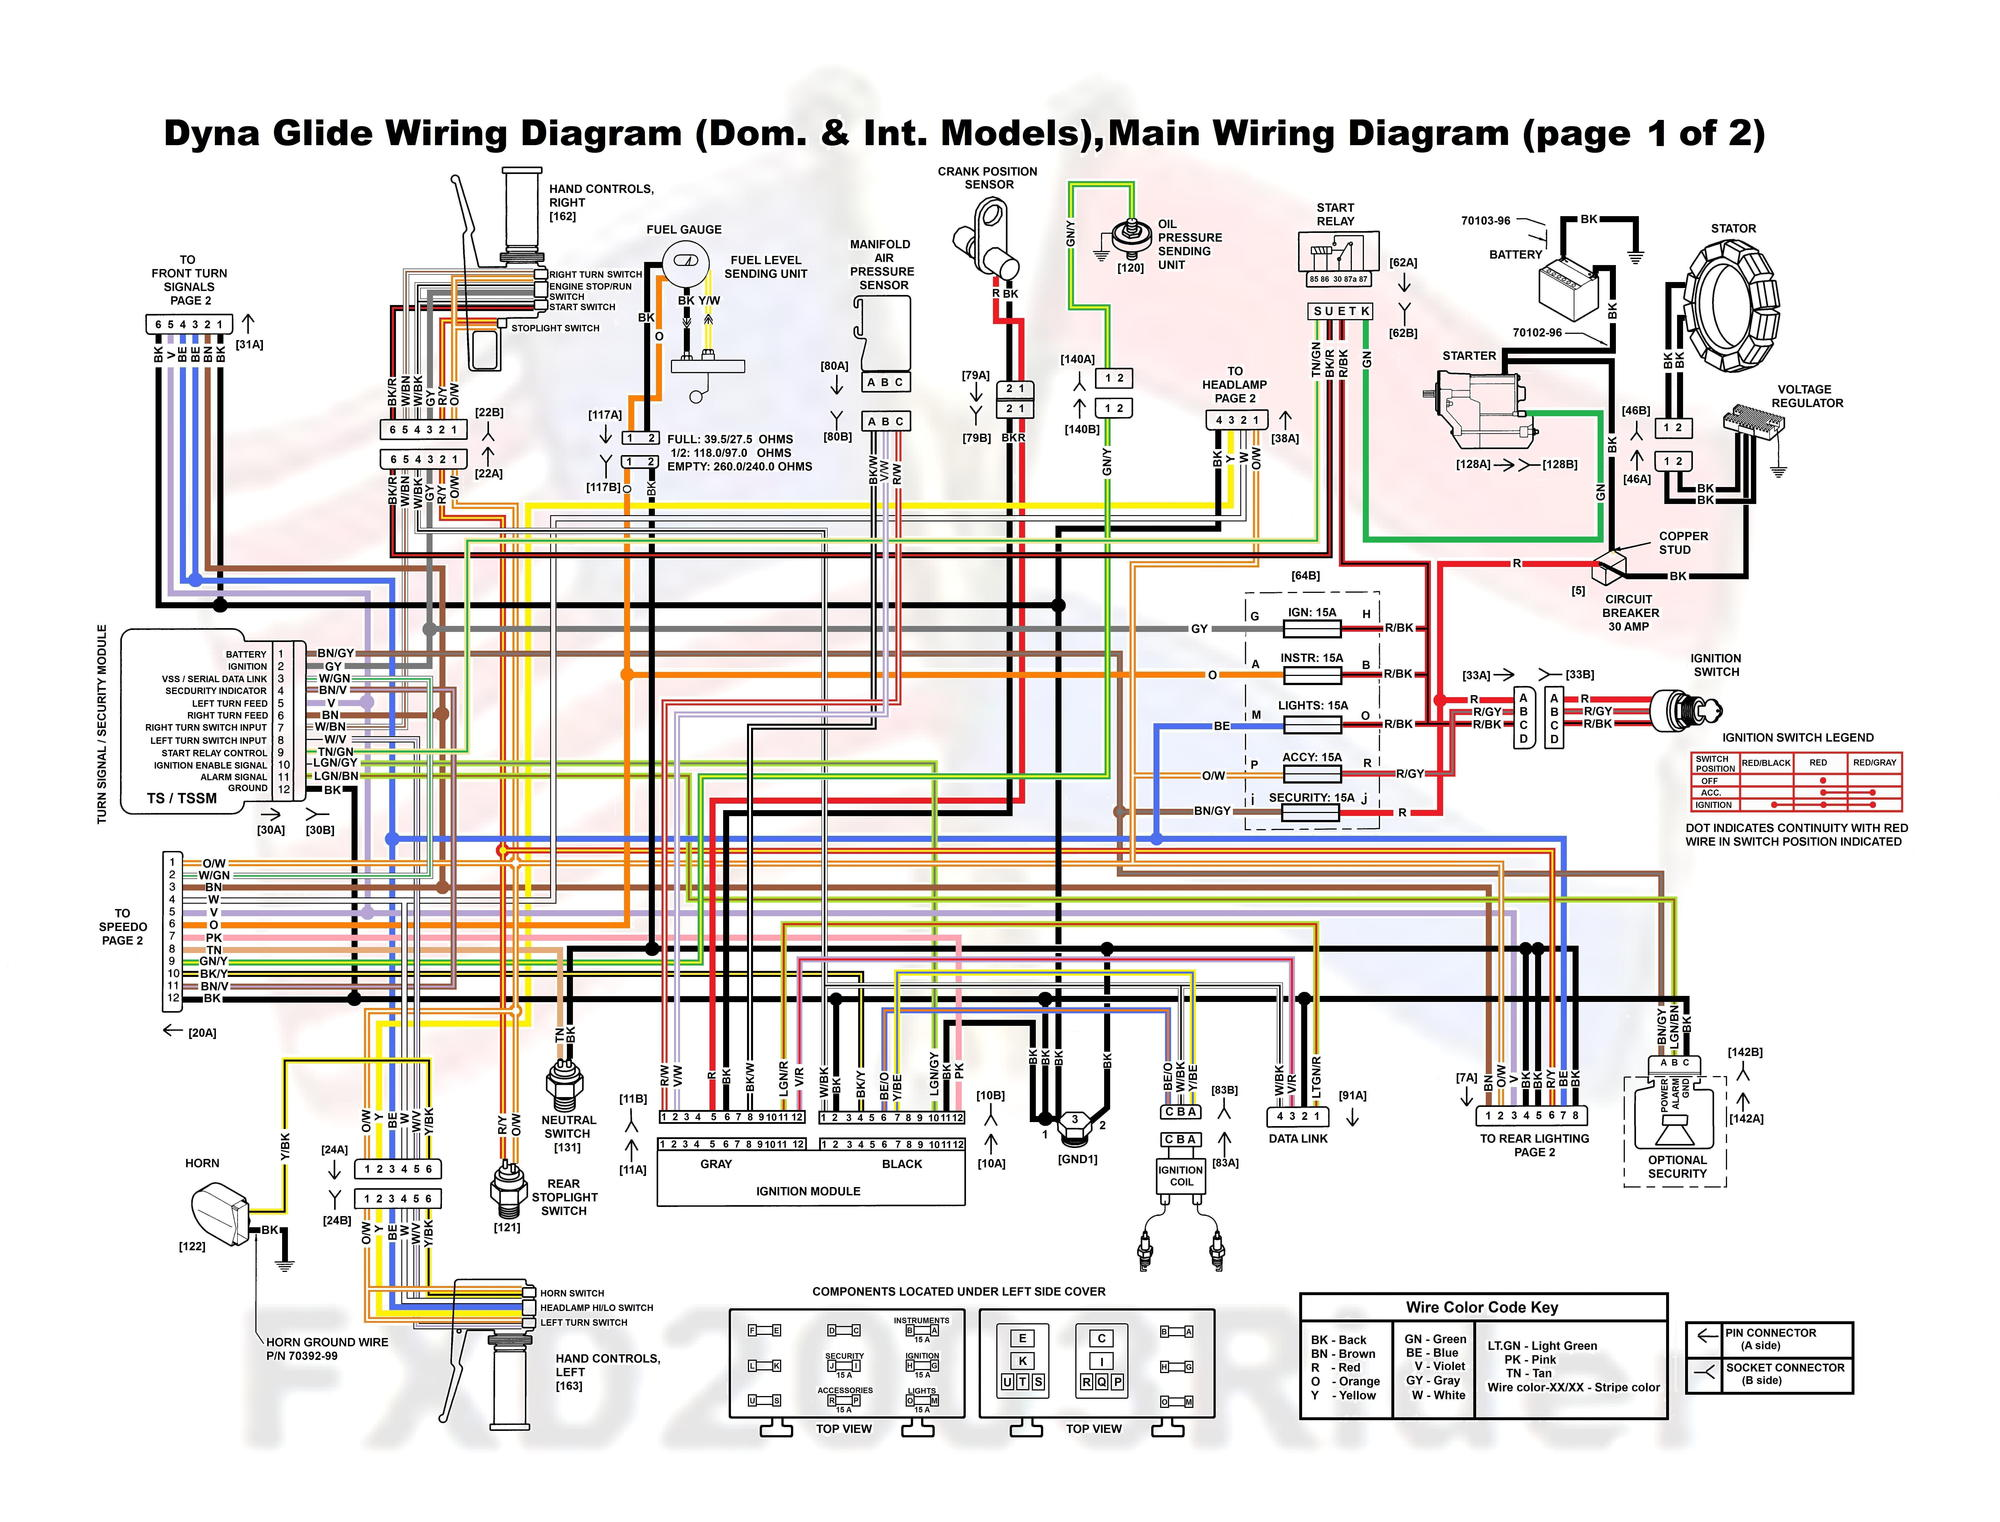 Road King Accessory Wiring Diagram Library. 2005 Harley Fxd I Dyna Wiring Diagram Auto Electrical 1999 Cherokee. Harley Davidson. 2005 Harley Wiring Diagram At Scoala.co